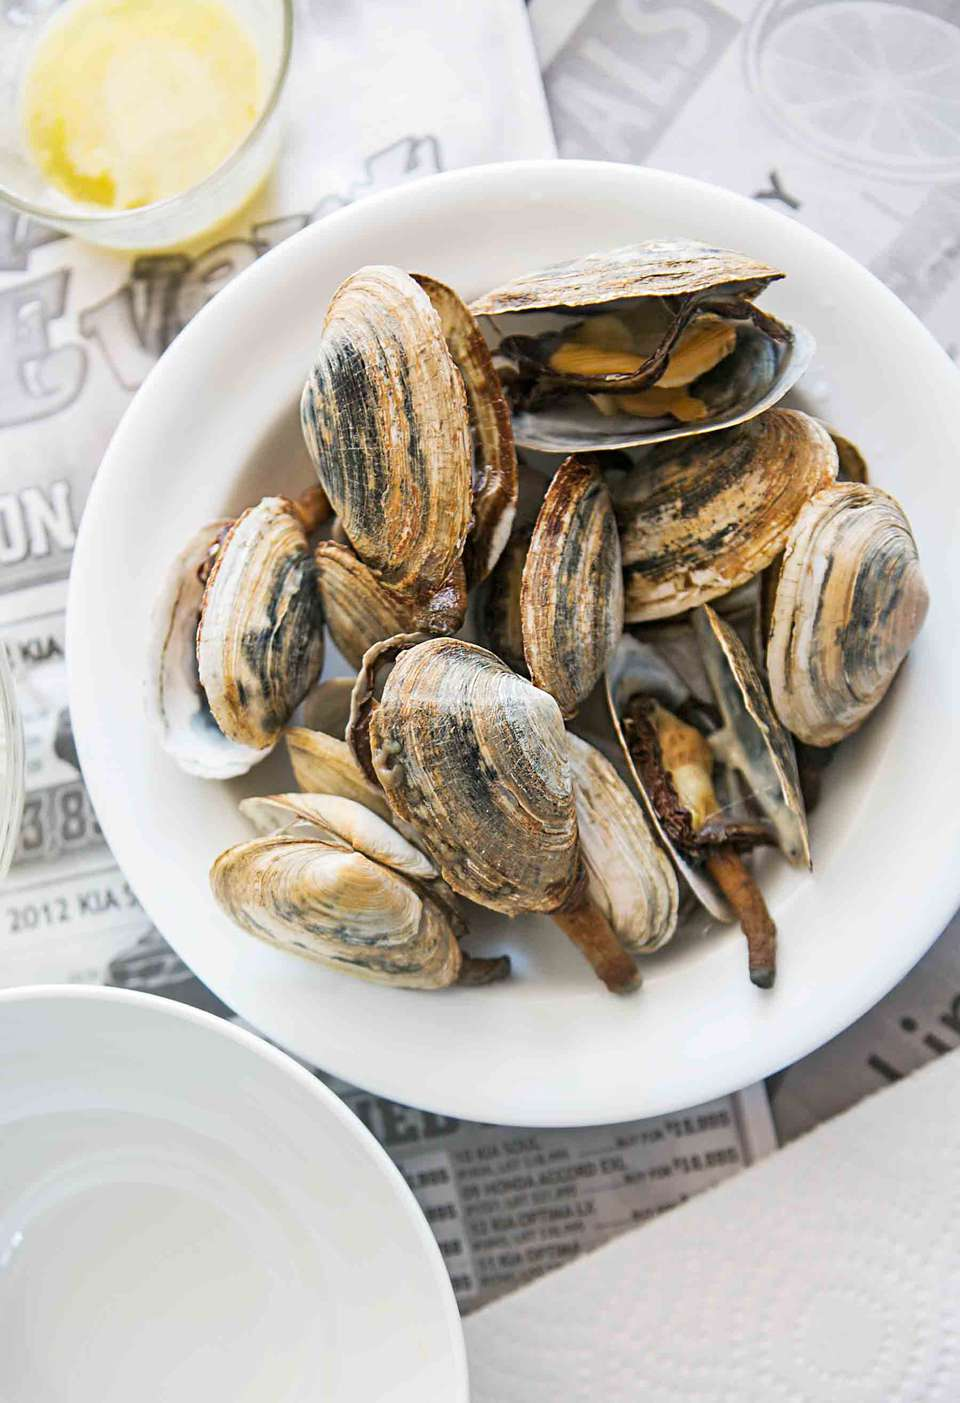 New England Steamers or soft shell steamed clams